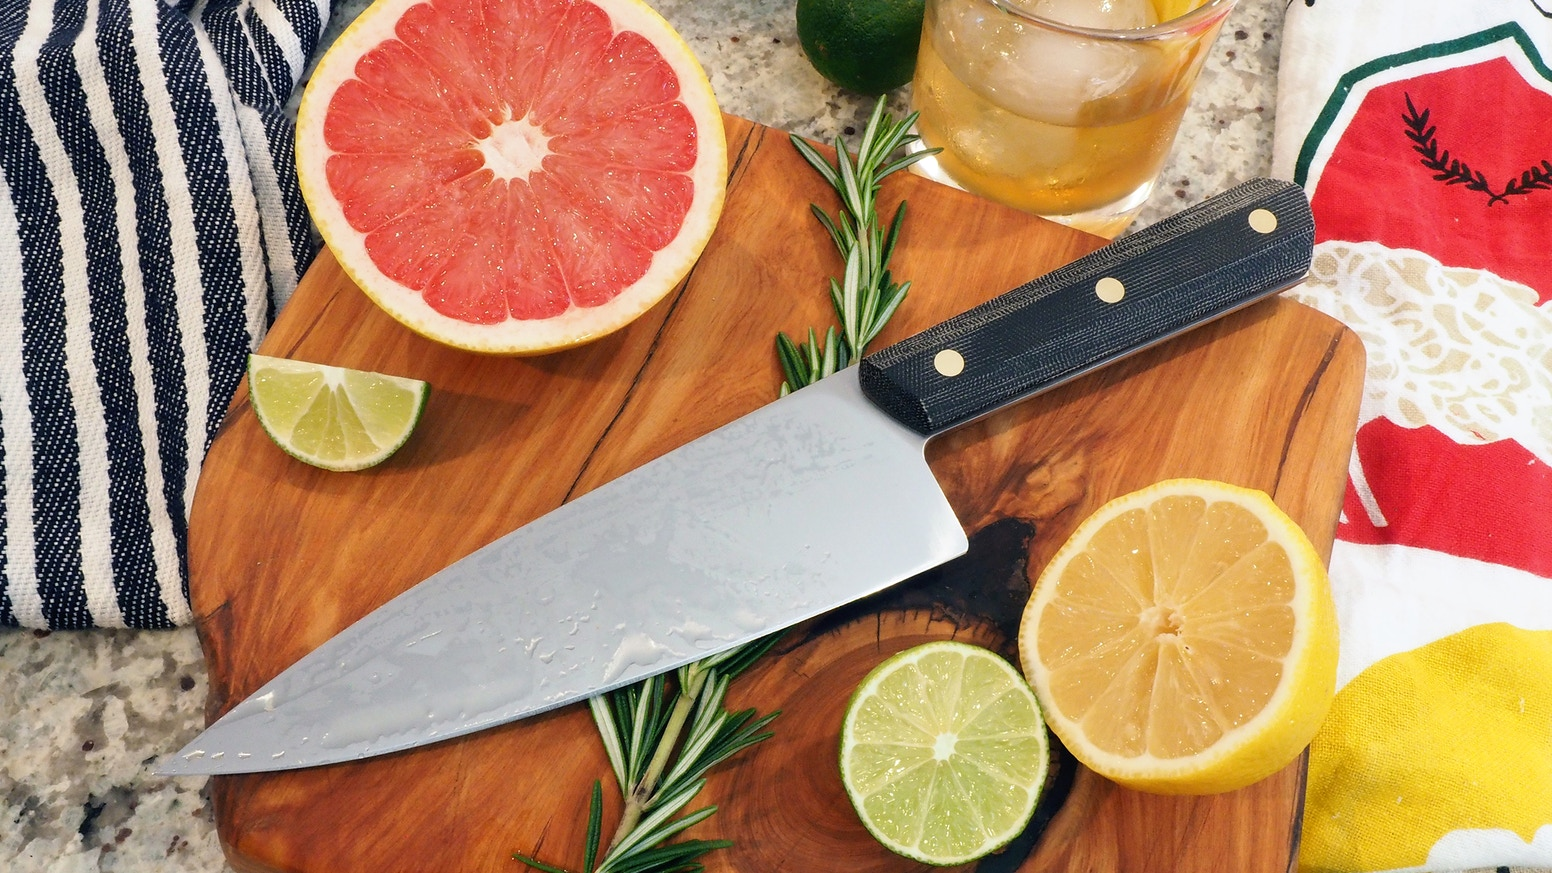 Inspired by a love of food and family, the Nita Chef Knife was designed by Lucas Burnley as a kitchen knife for today's home cooks.